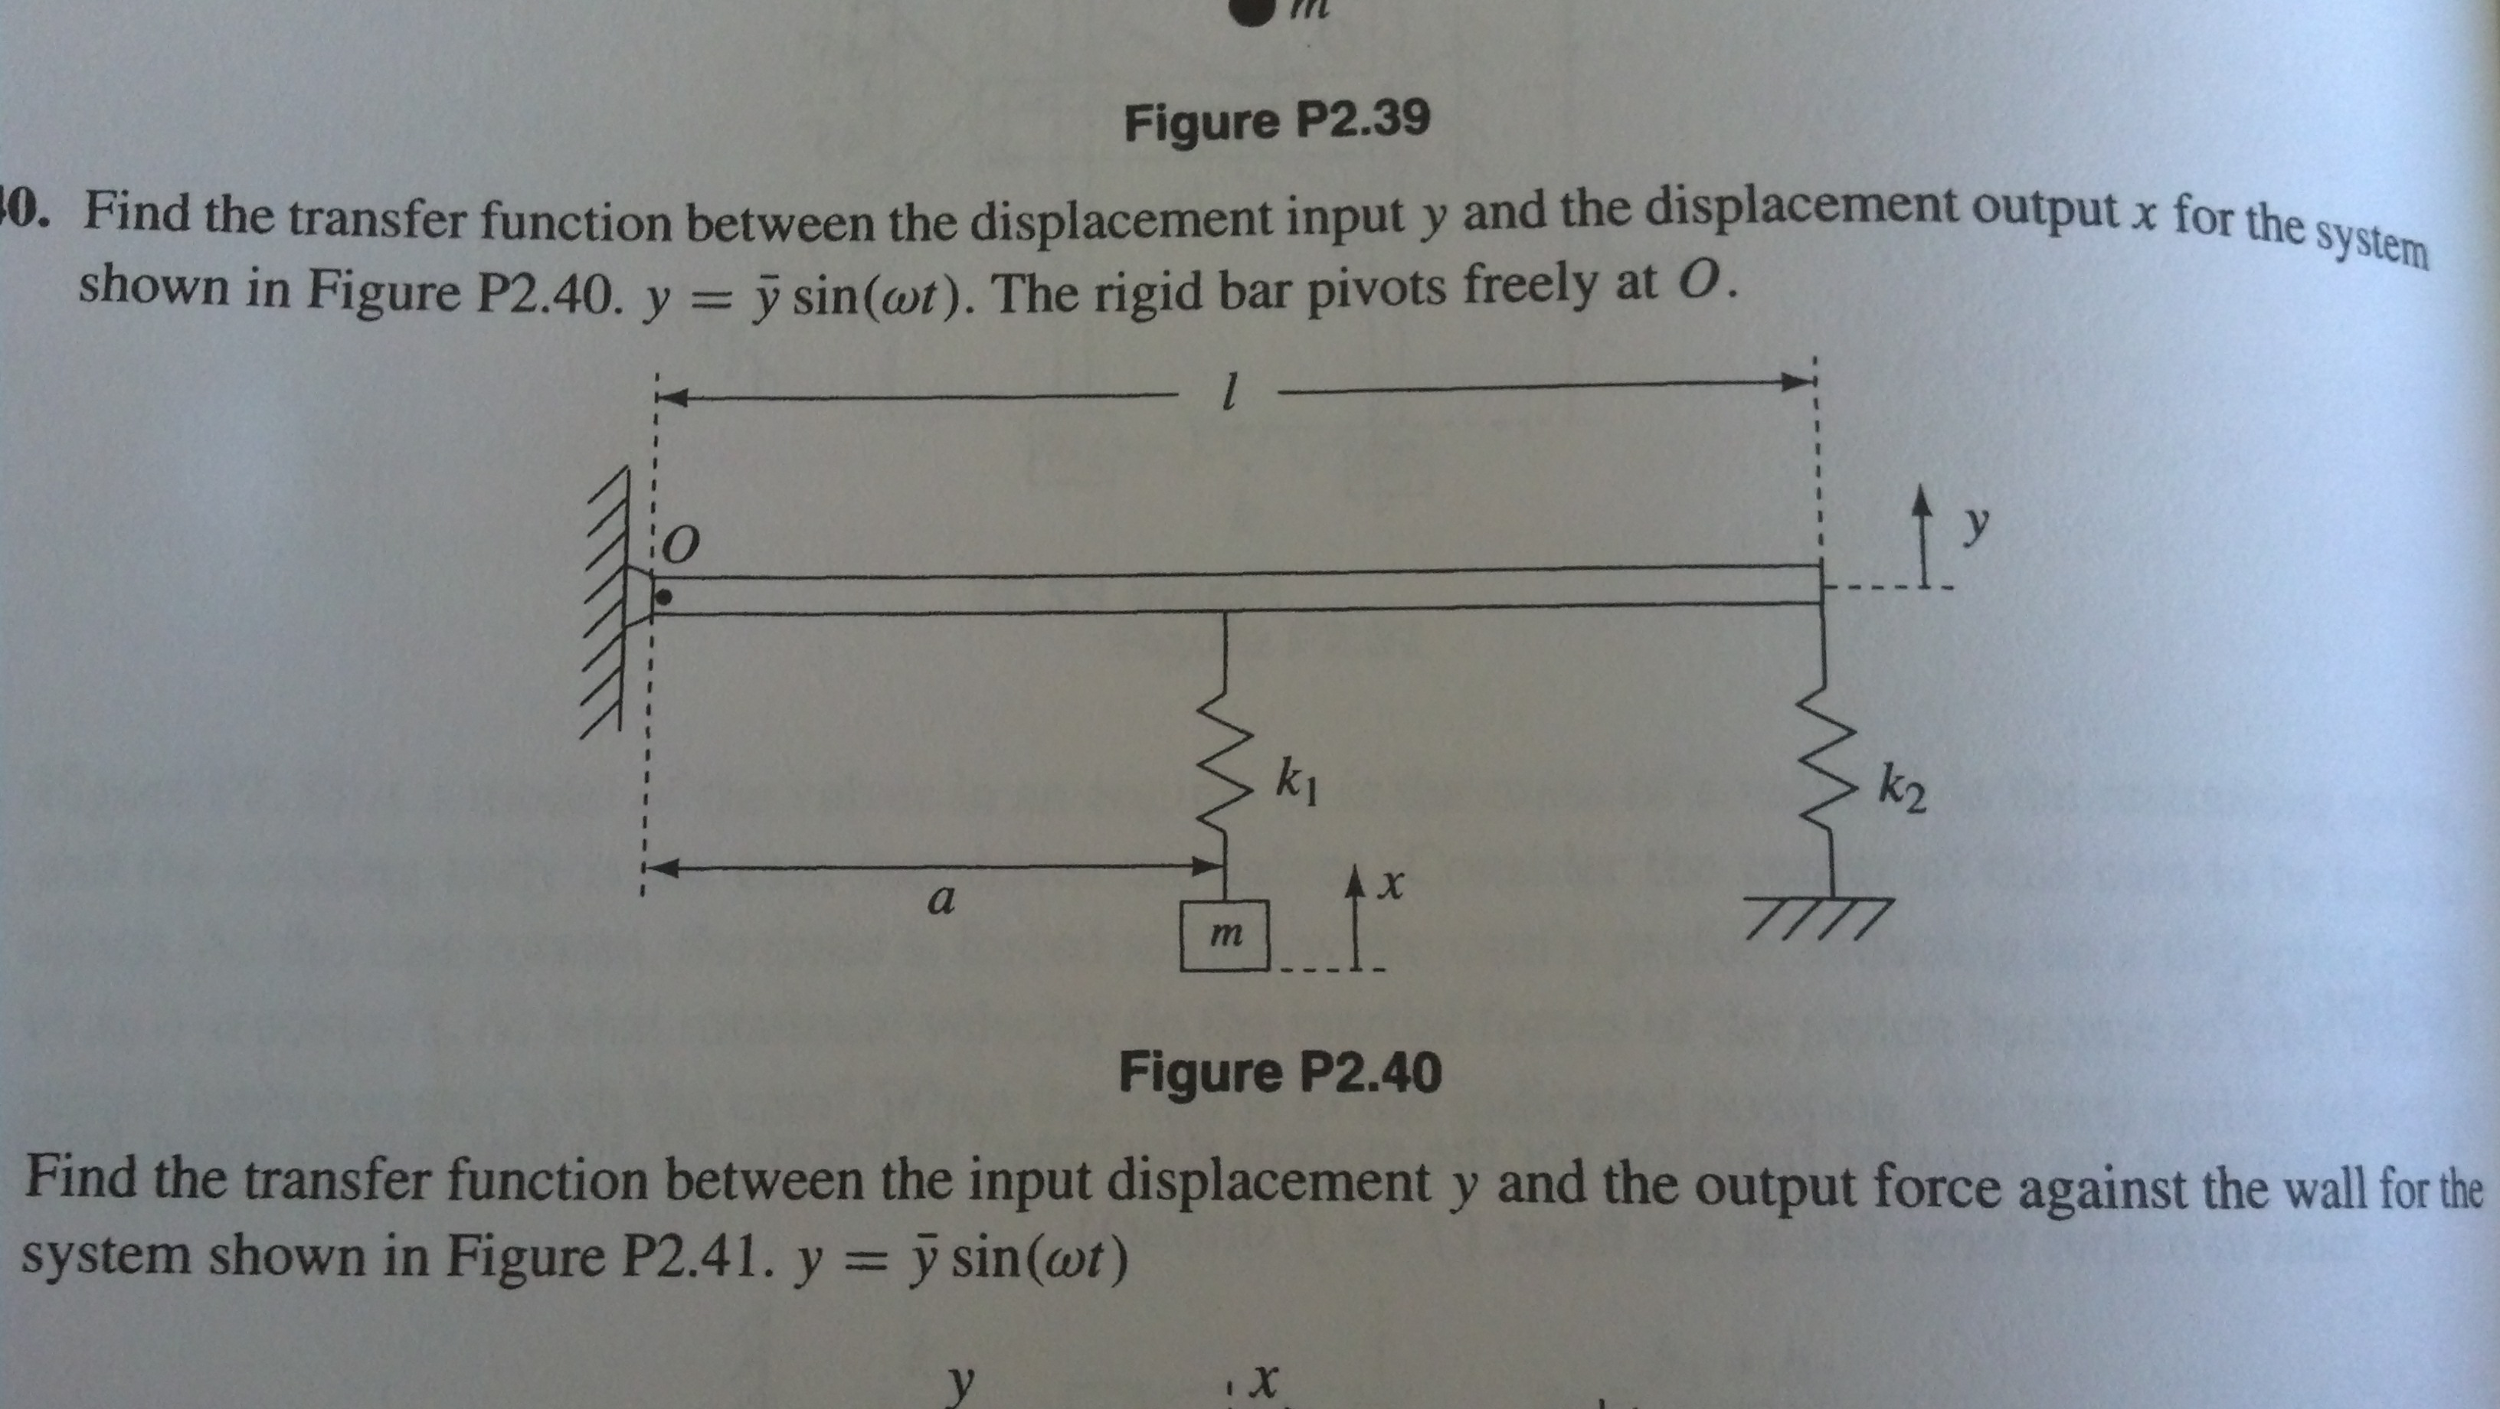 Find the transfer function between the displacemen